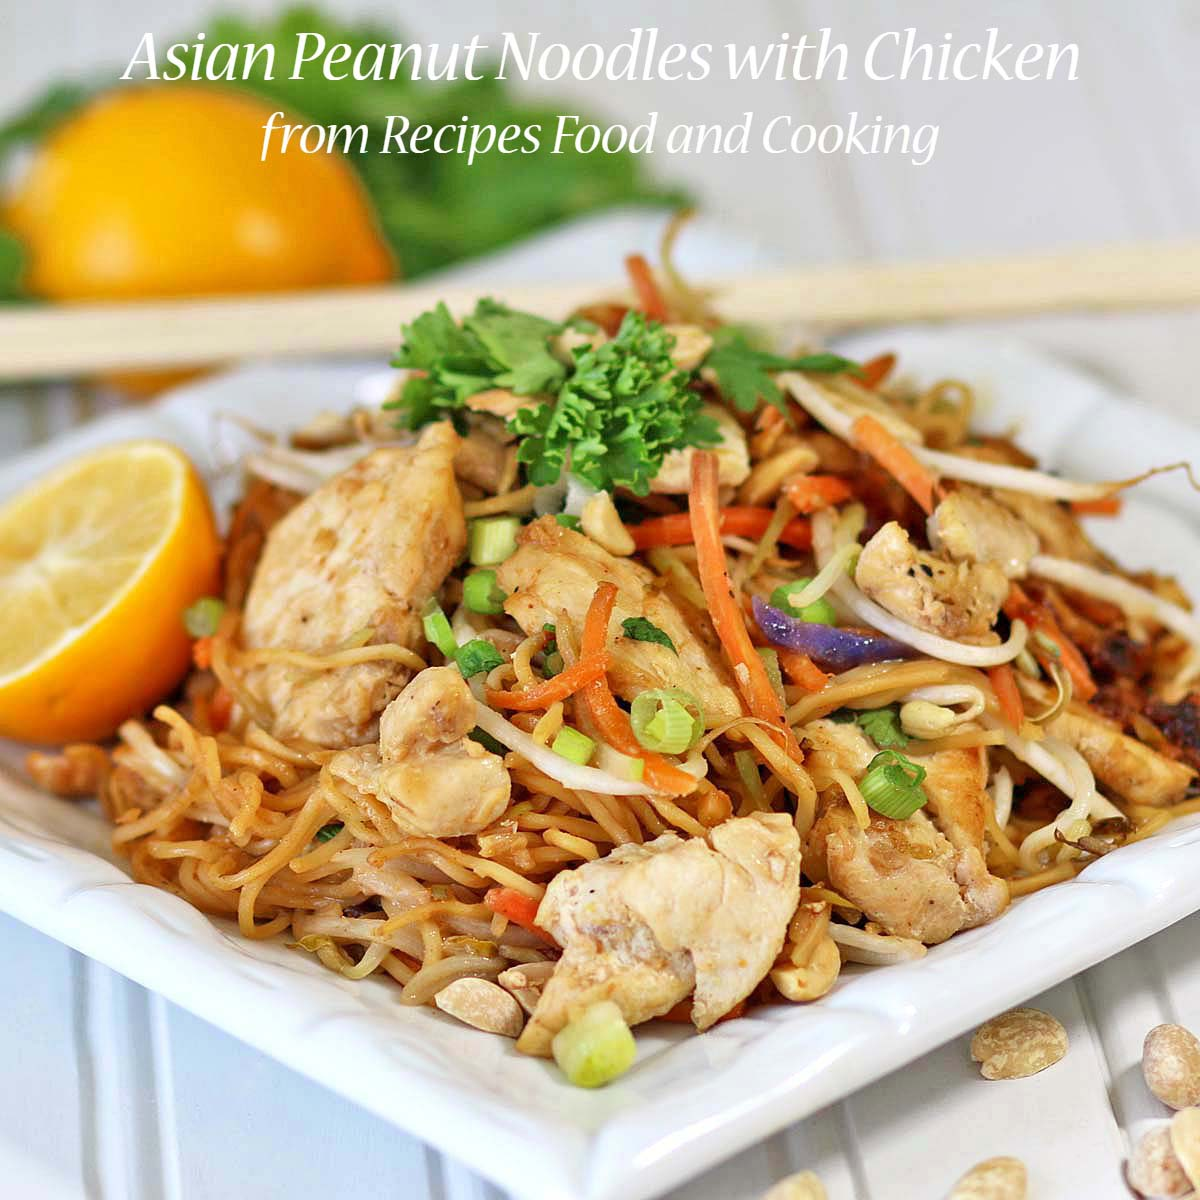 Asian peanut noodles with chicken weekdaysupper recipes food and asian peanut chicken with noodles forumfinder Gallery